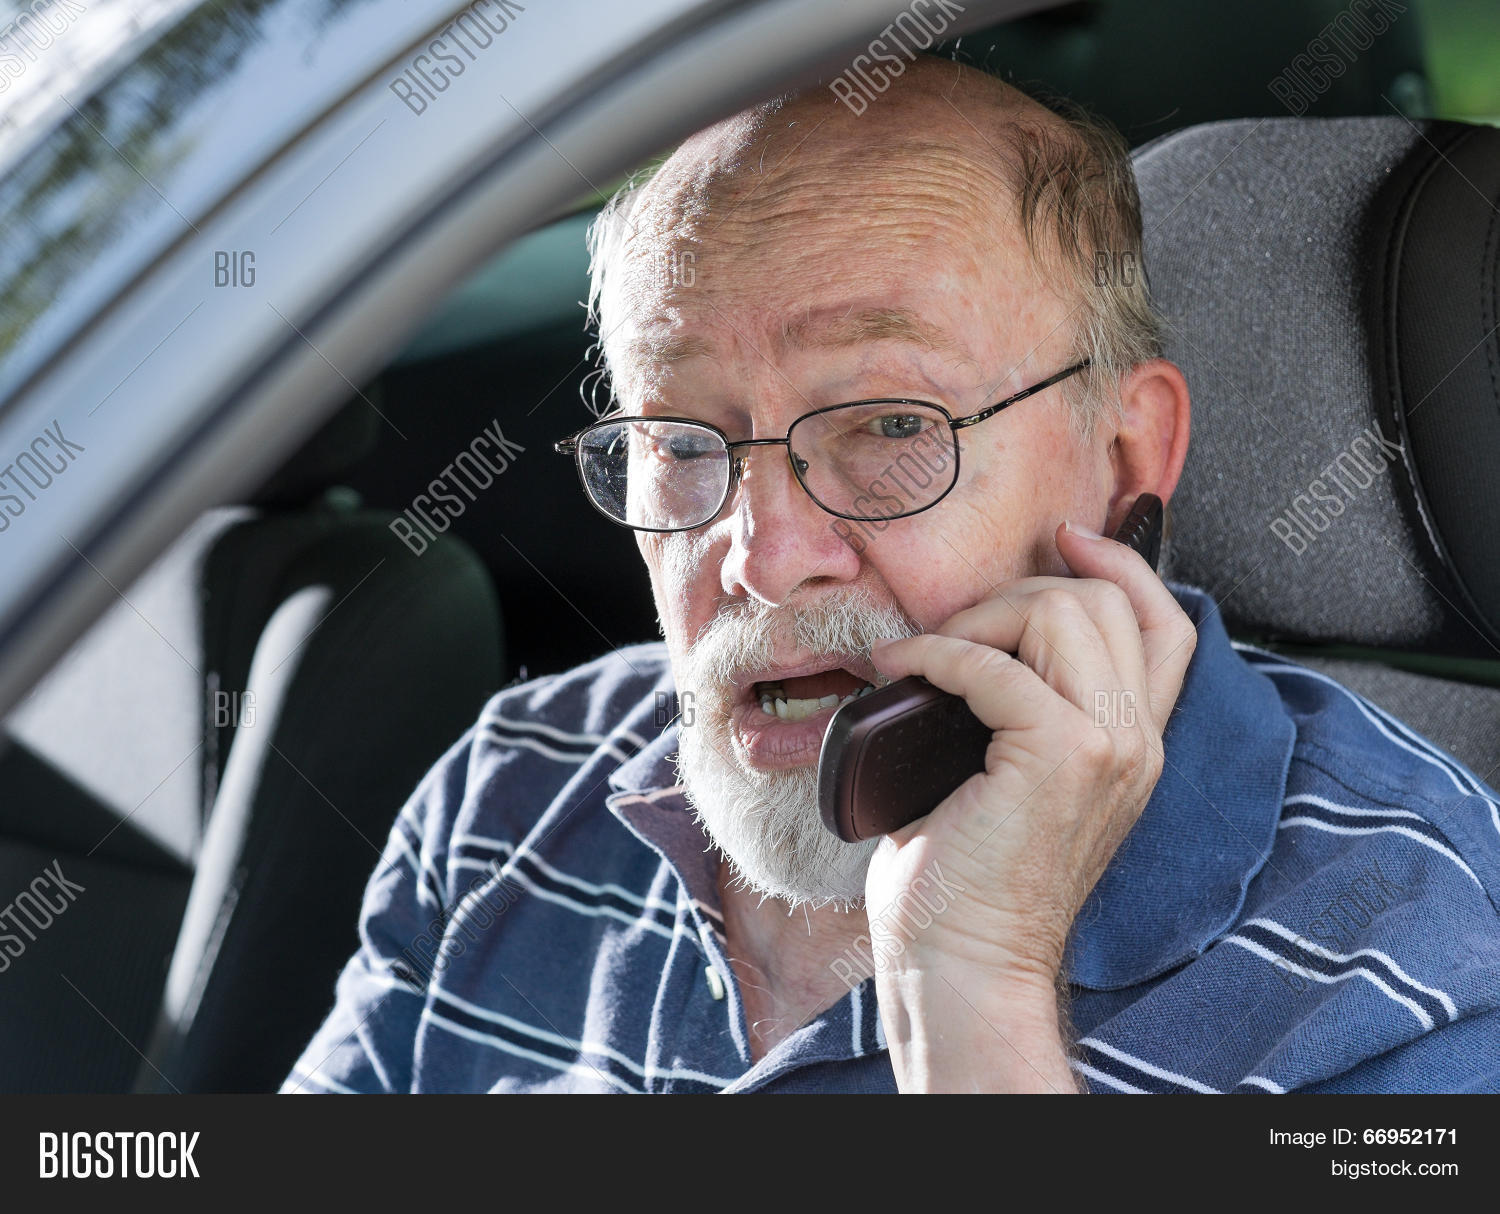 Angry Old Man Yelling Image Photo Free Trial Bigstock